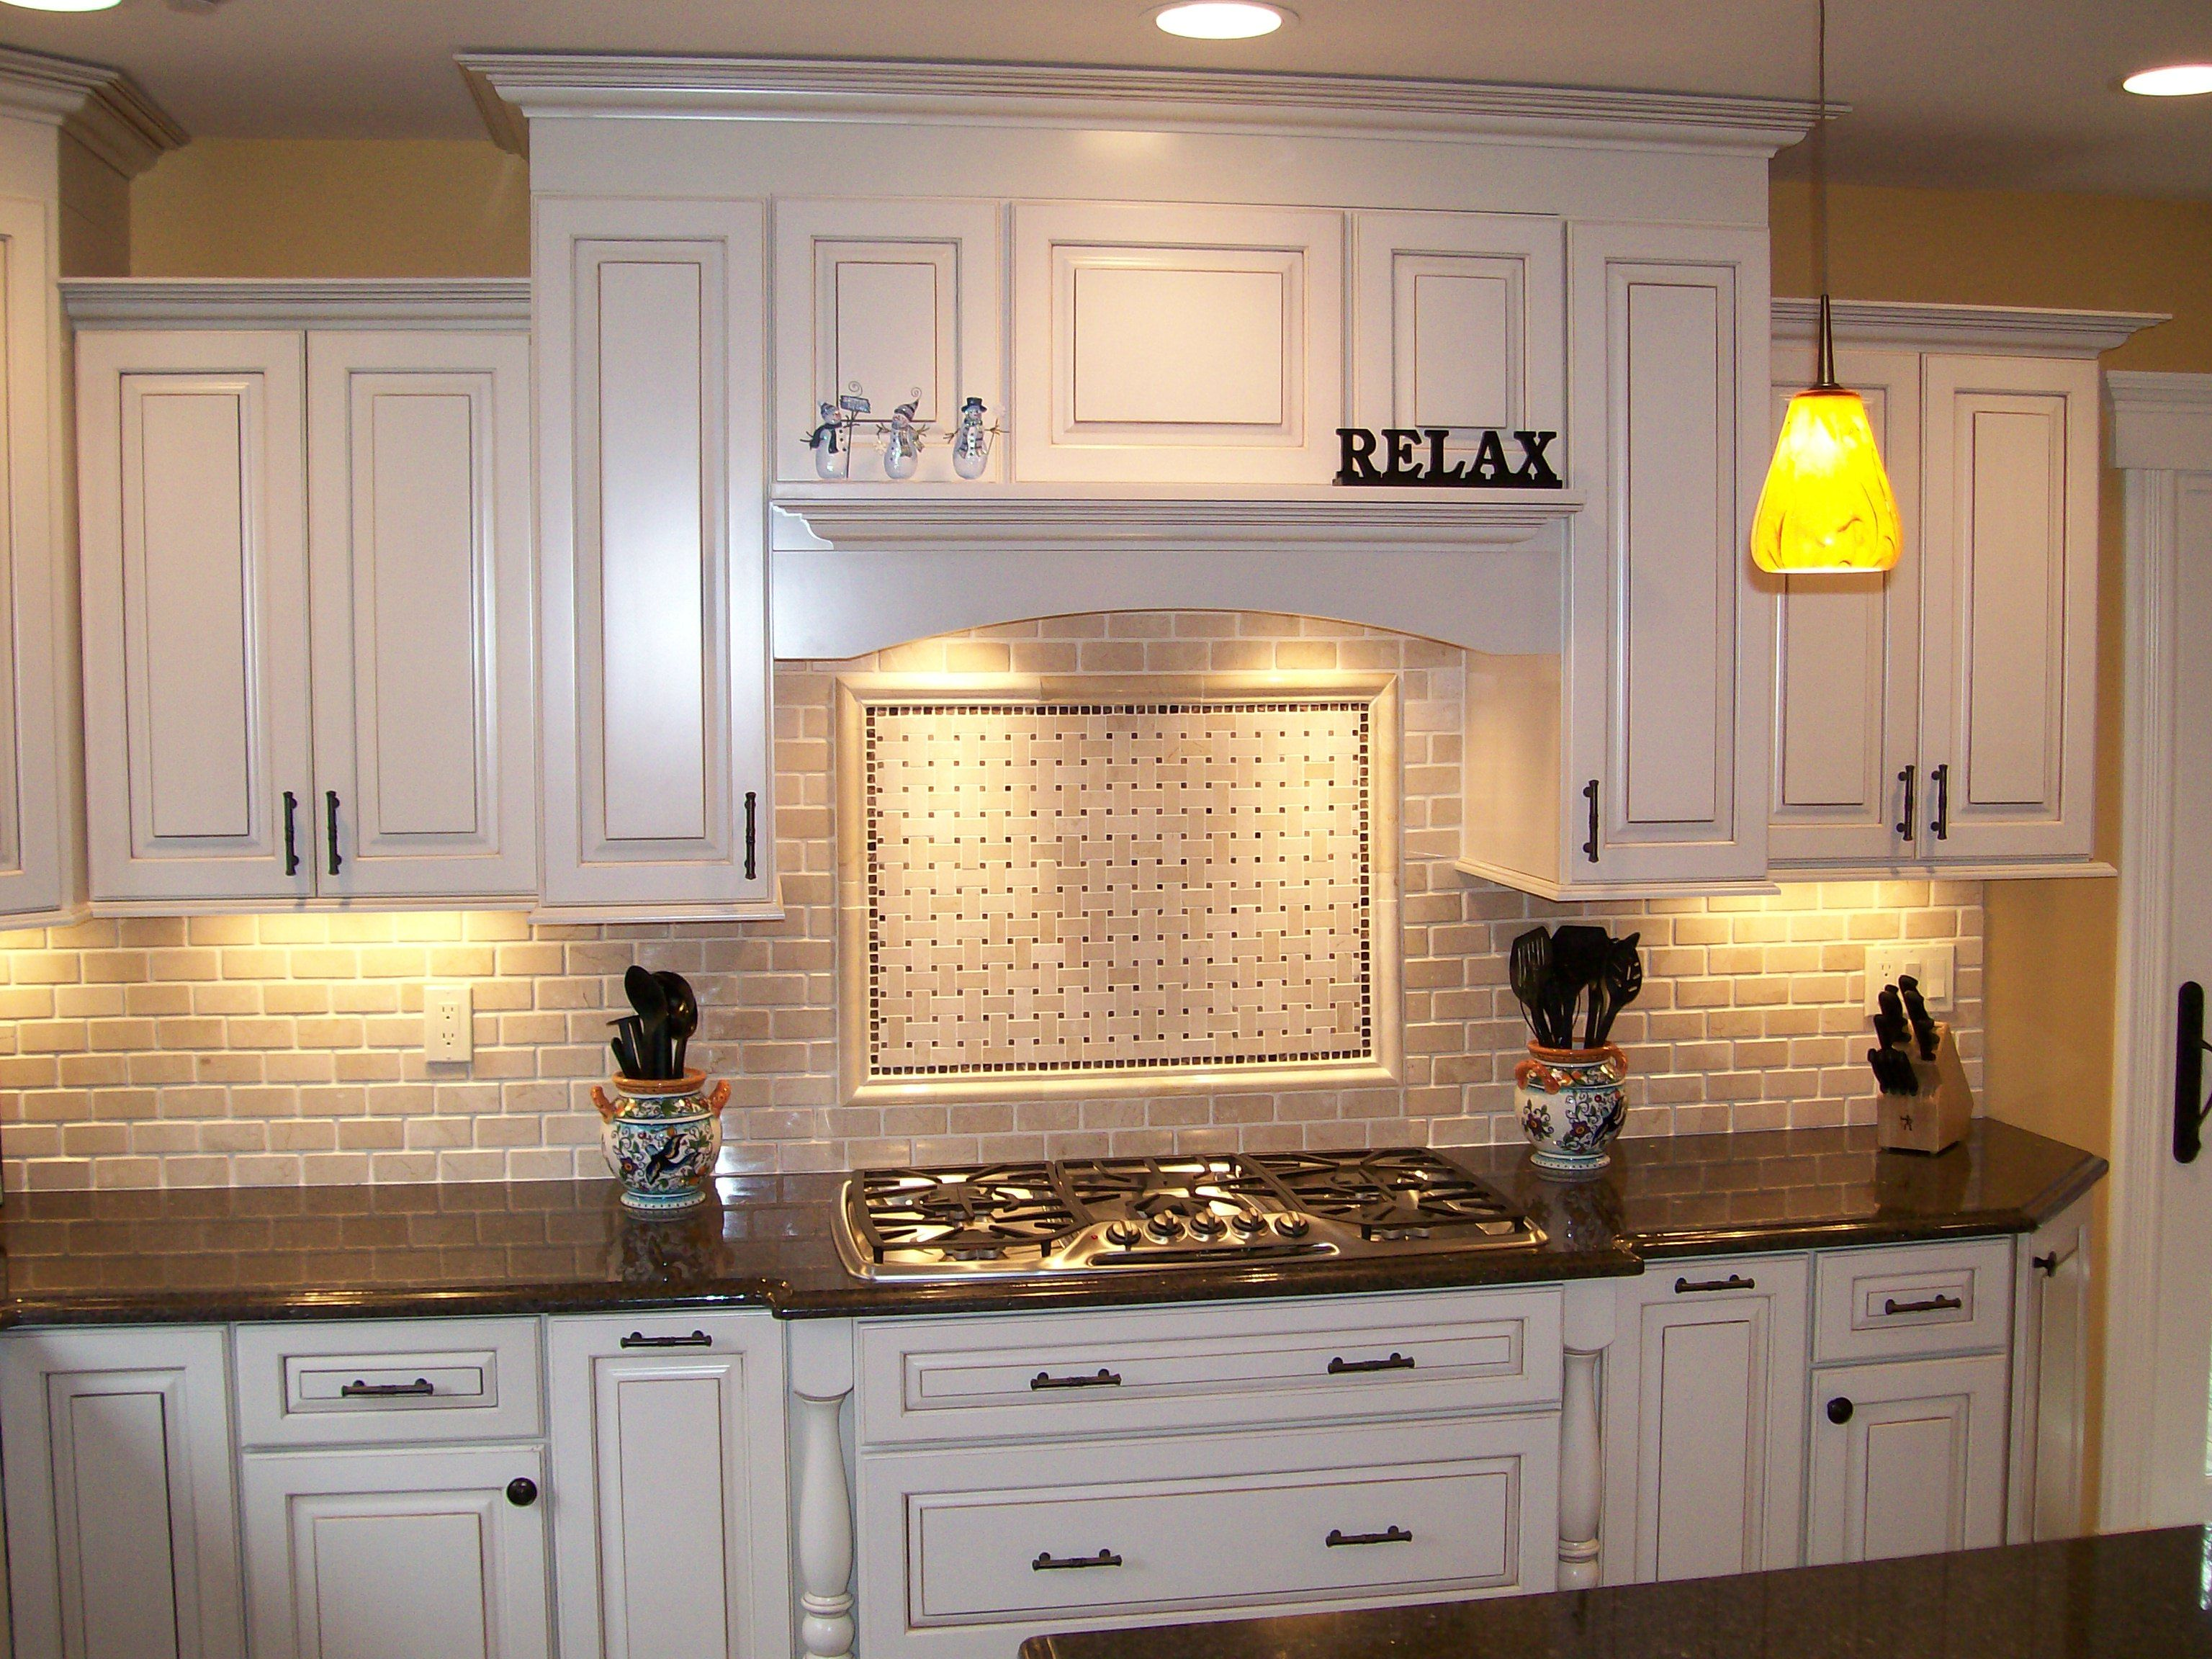 Kitchen Nice Brick Backsplash In Kitchen With White Cabinet And Storage And Black Countertop And